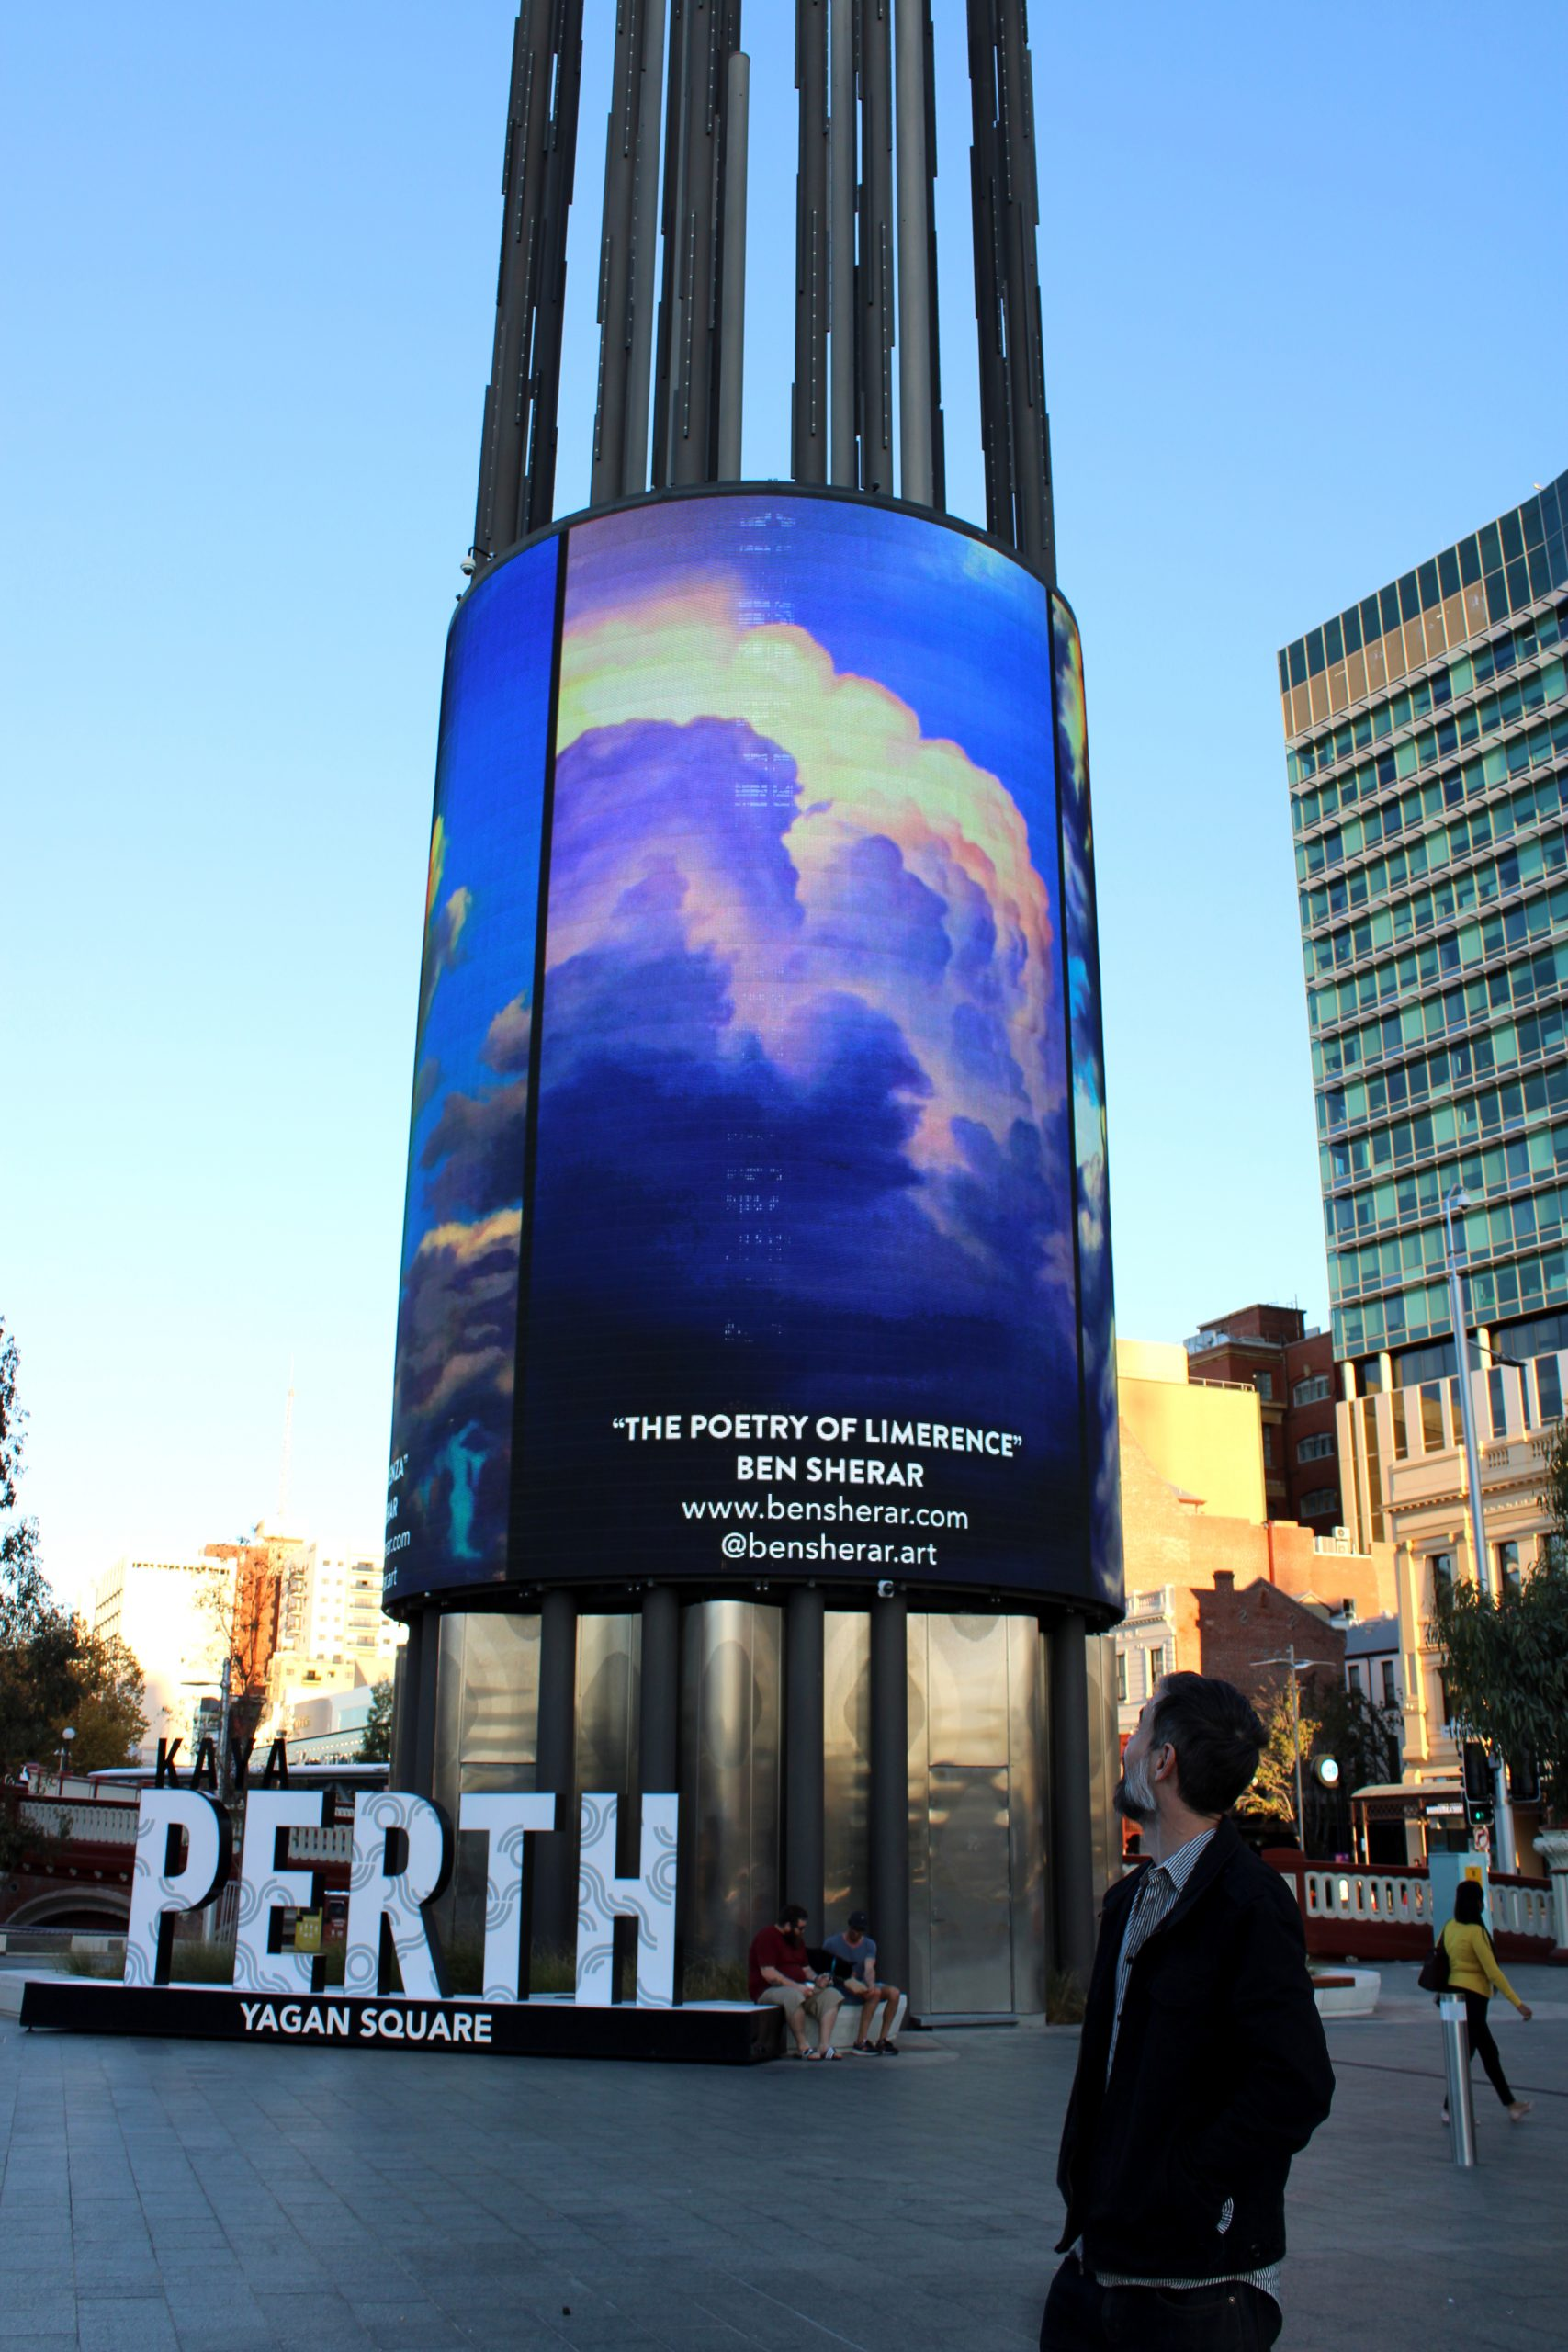 A display of a painting on the Digital Tower at Yagan Square in perth Western Australia